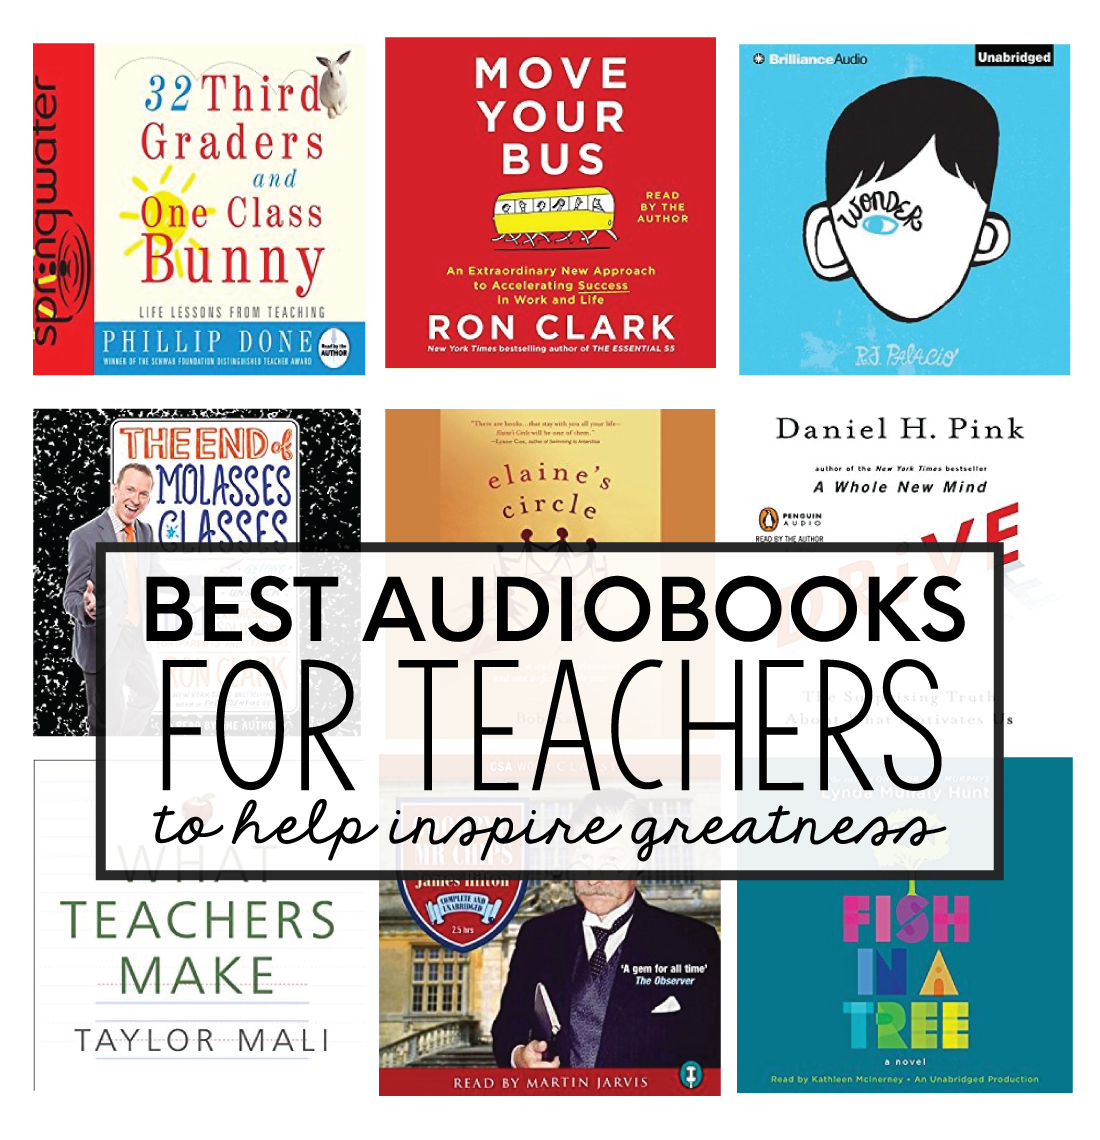 Best Audible Books for Teachers to inspire greatness